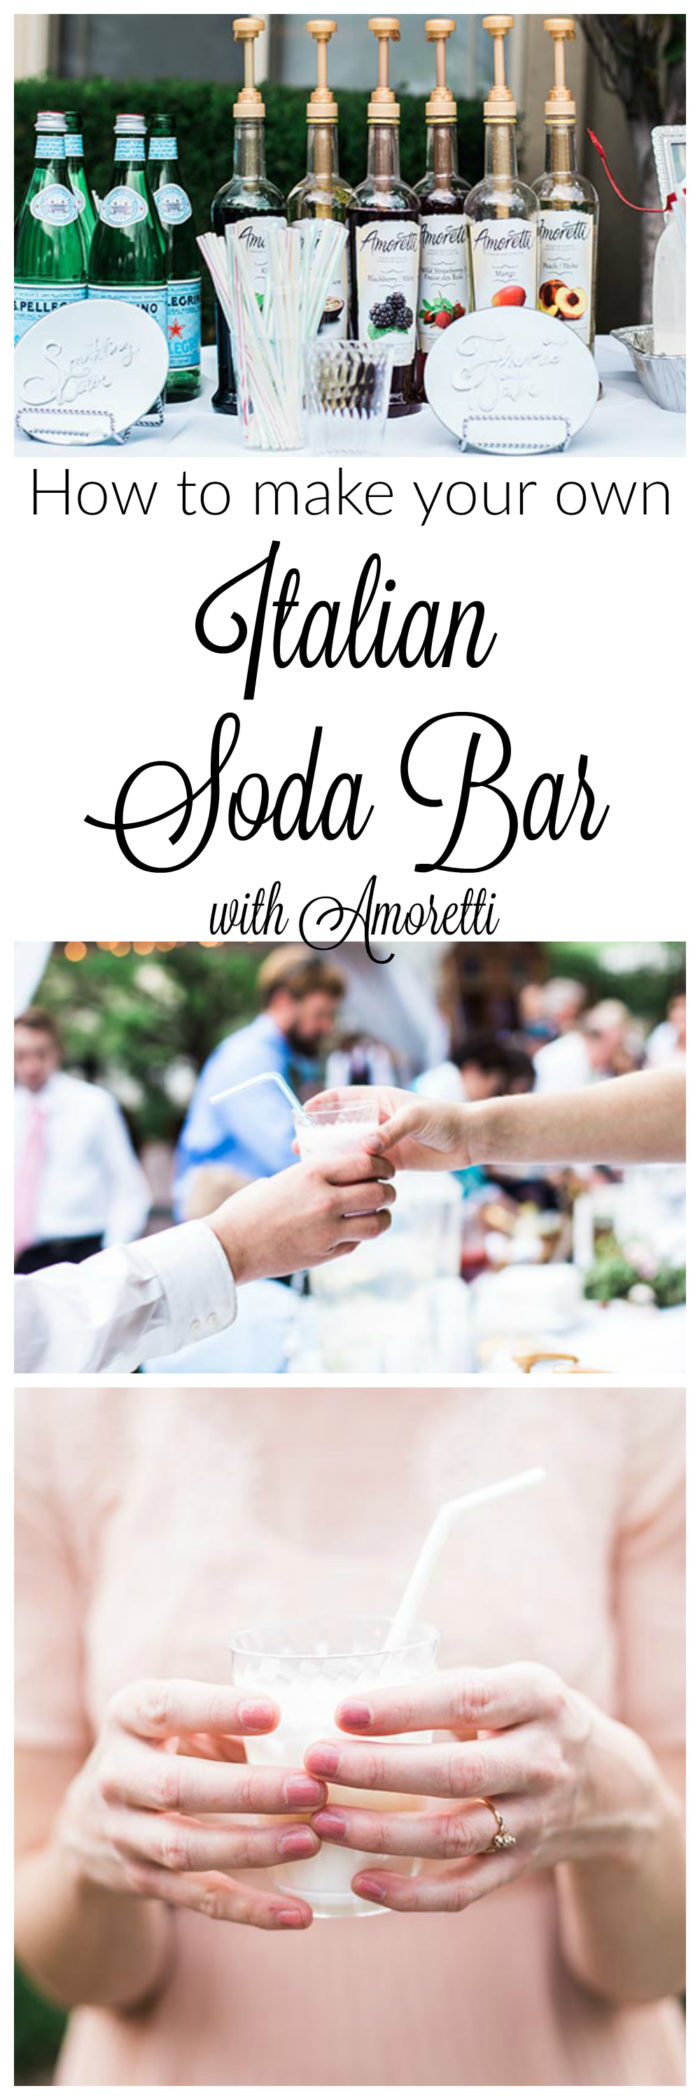 Italian Soda Bar with Amoretti is the perfect way to celebrate any event in your life!